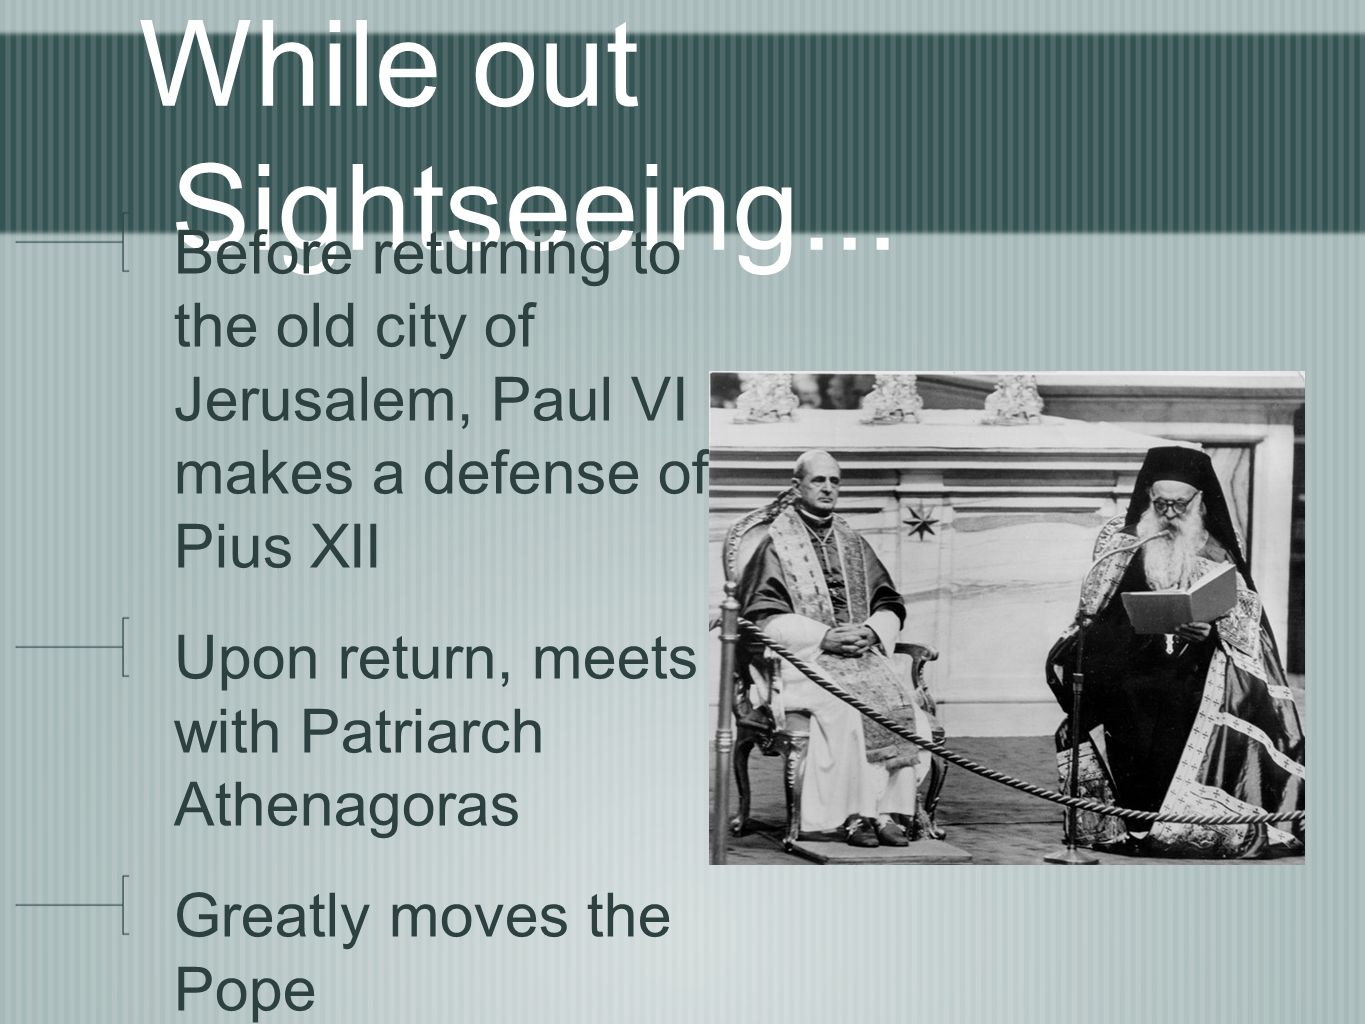 While out Sightseeing... Before returning to the old city of Jerusalem, Paul VI makes a defense of Pius XII Upon return, meets with Patriarch Athenago